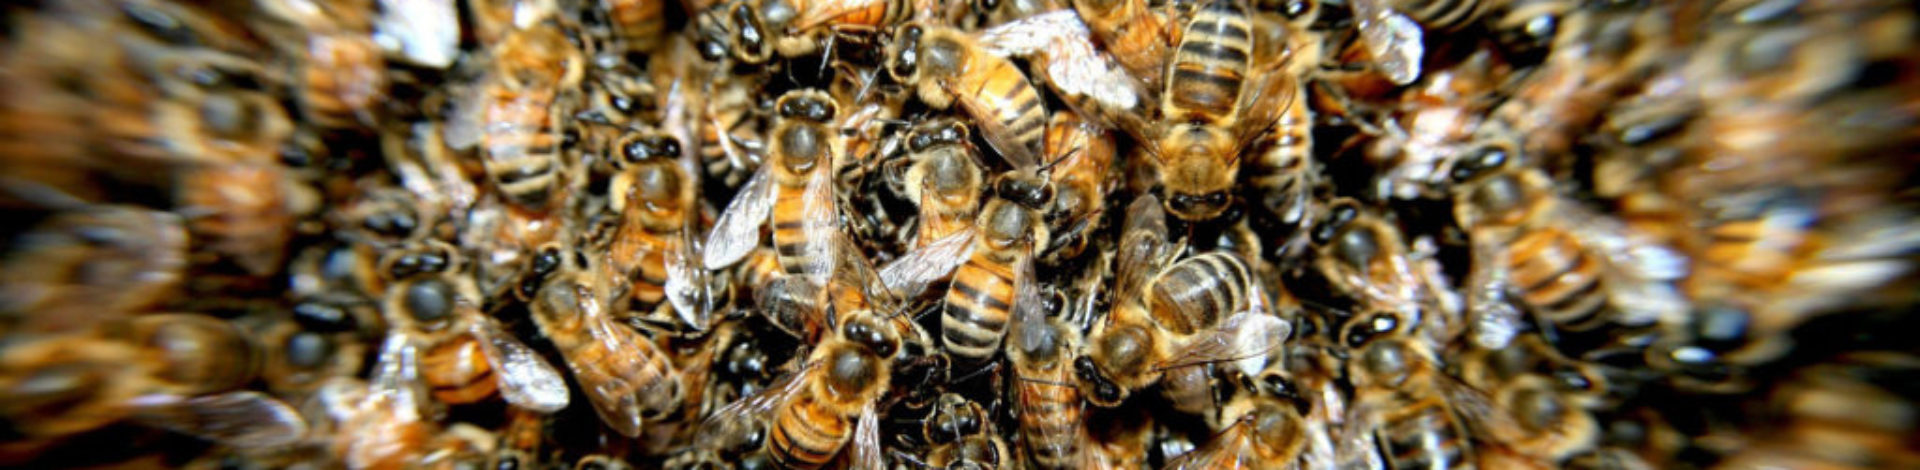 bees-276190_1920